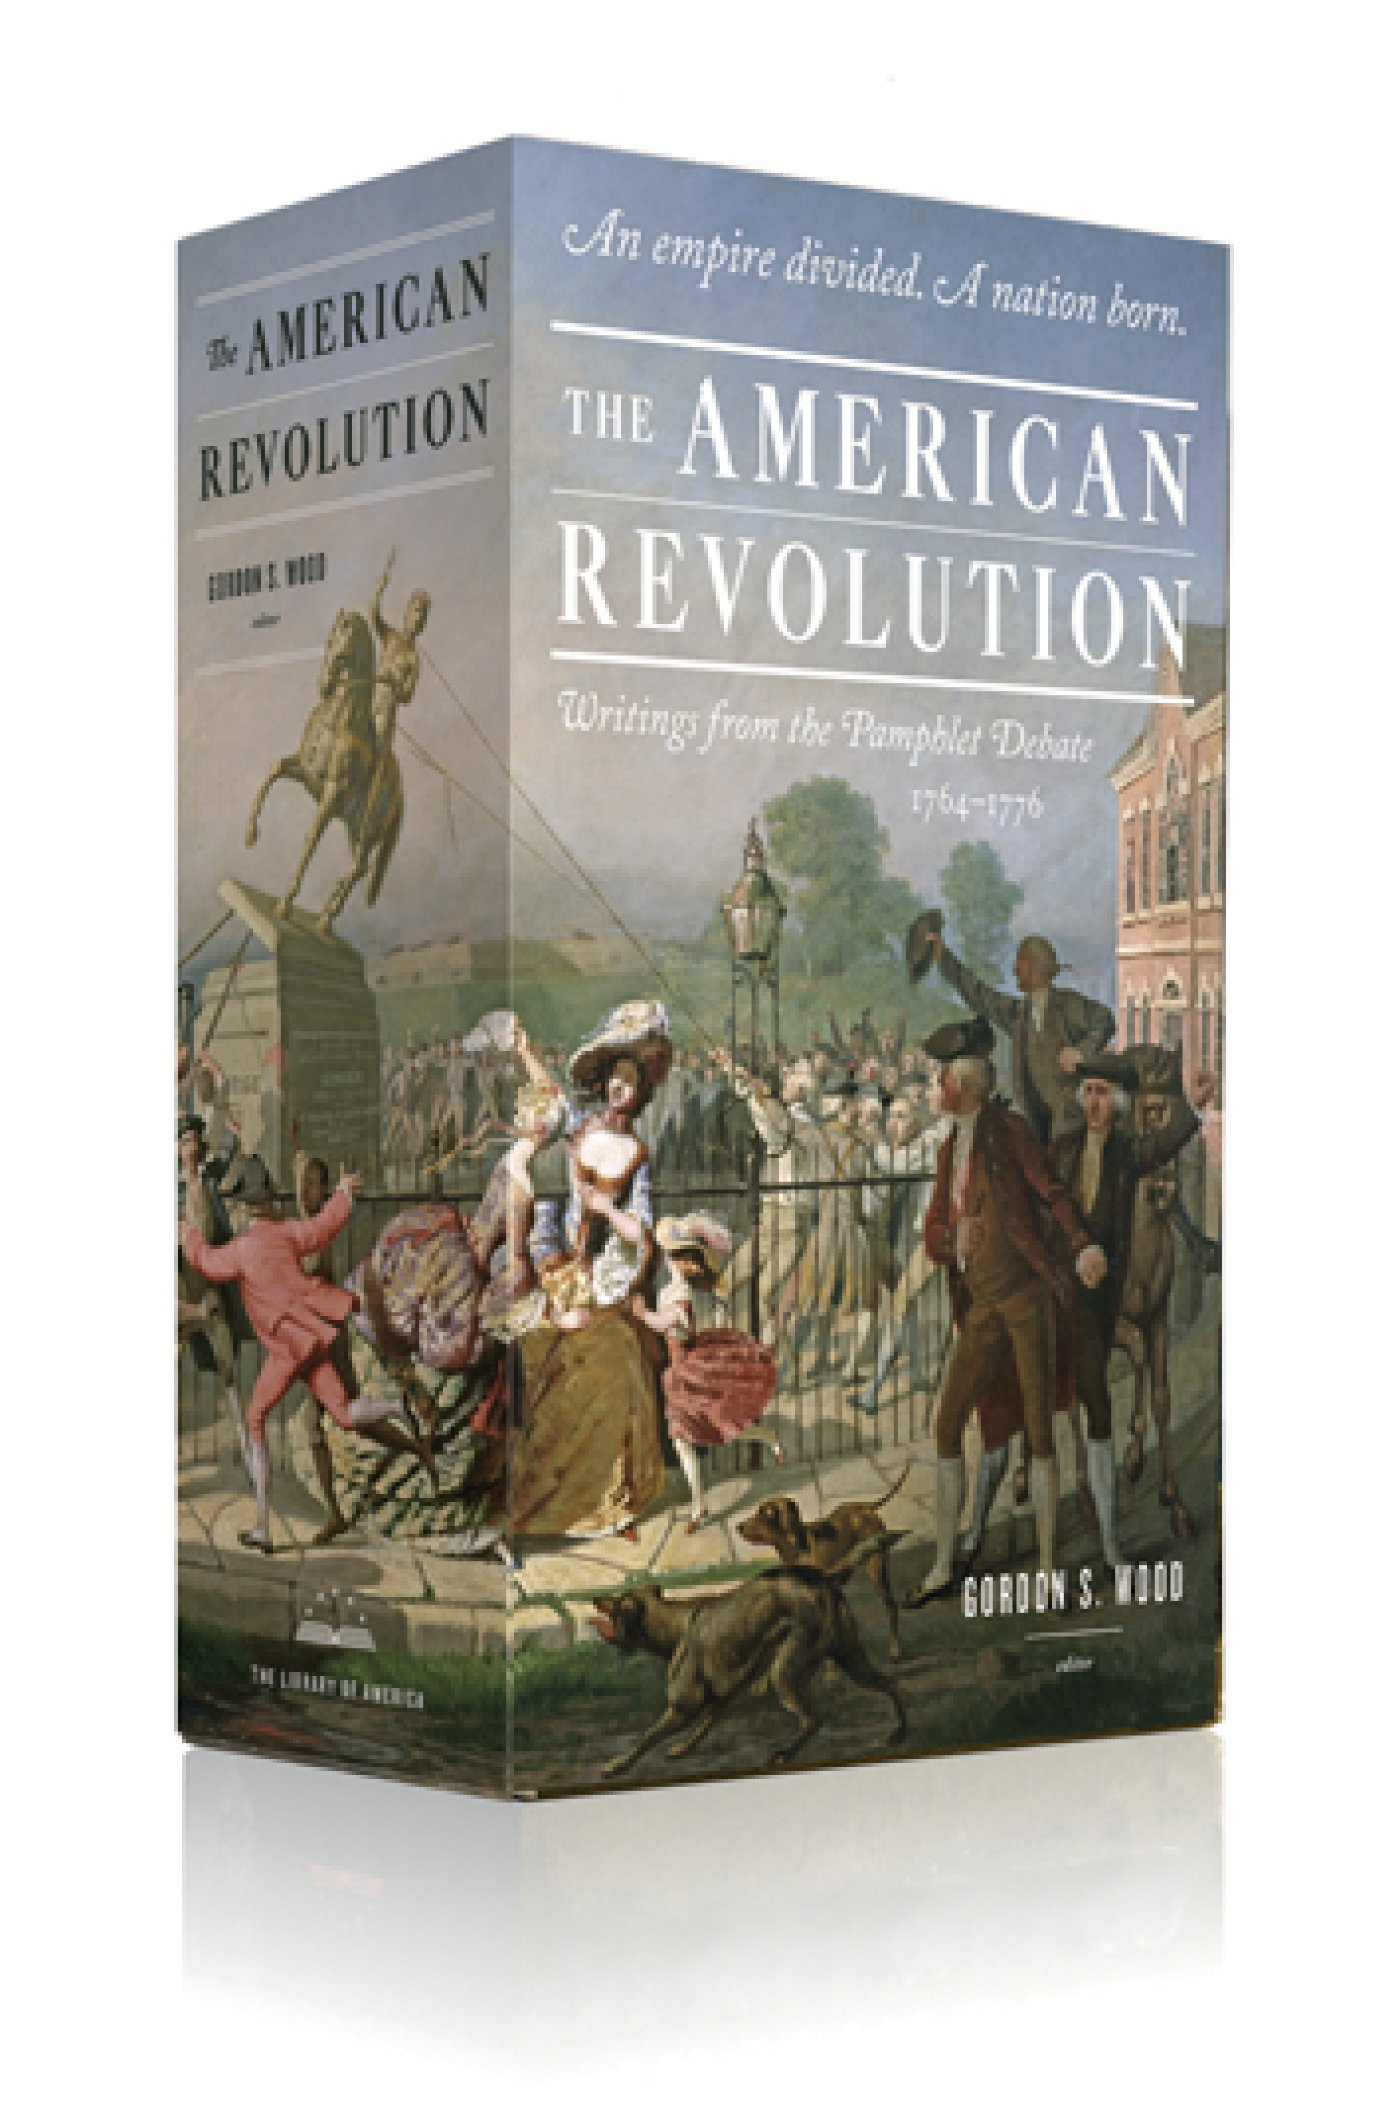 the american revolution writings from the pamphlet debate 1764 the american revolution writings from the pamphlet debate 1764 1776 gordon s wood various 9781598534108 com books